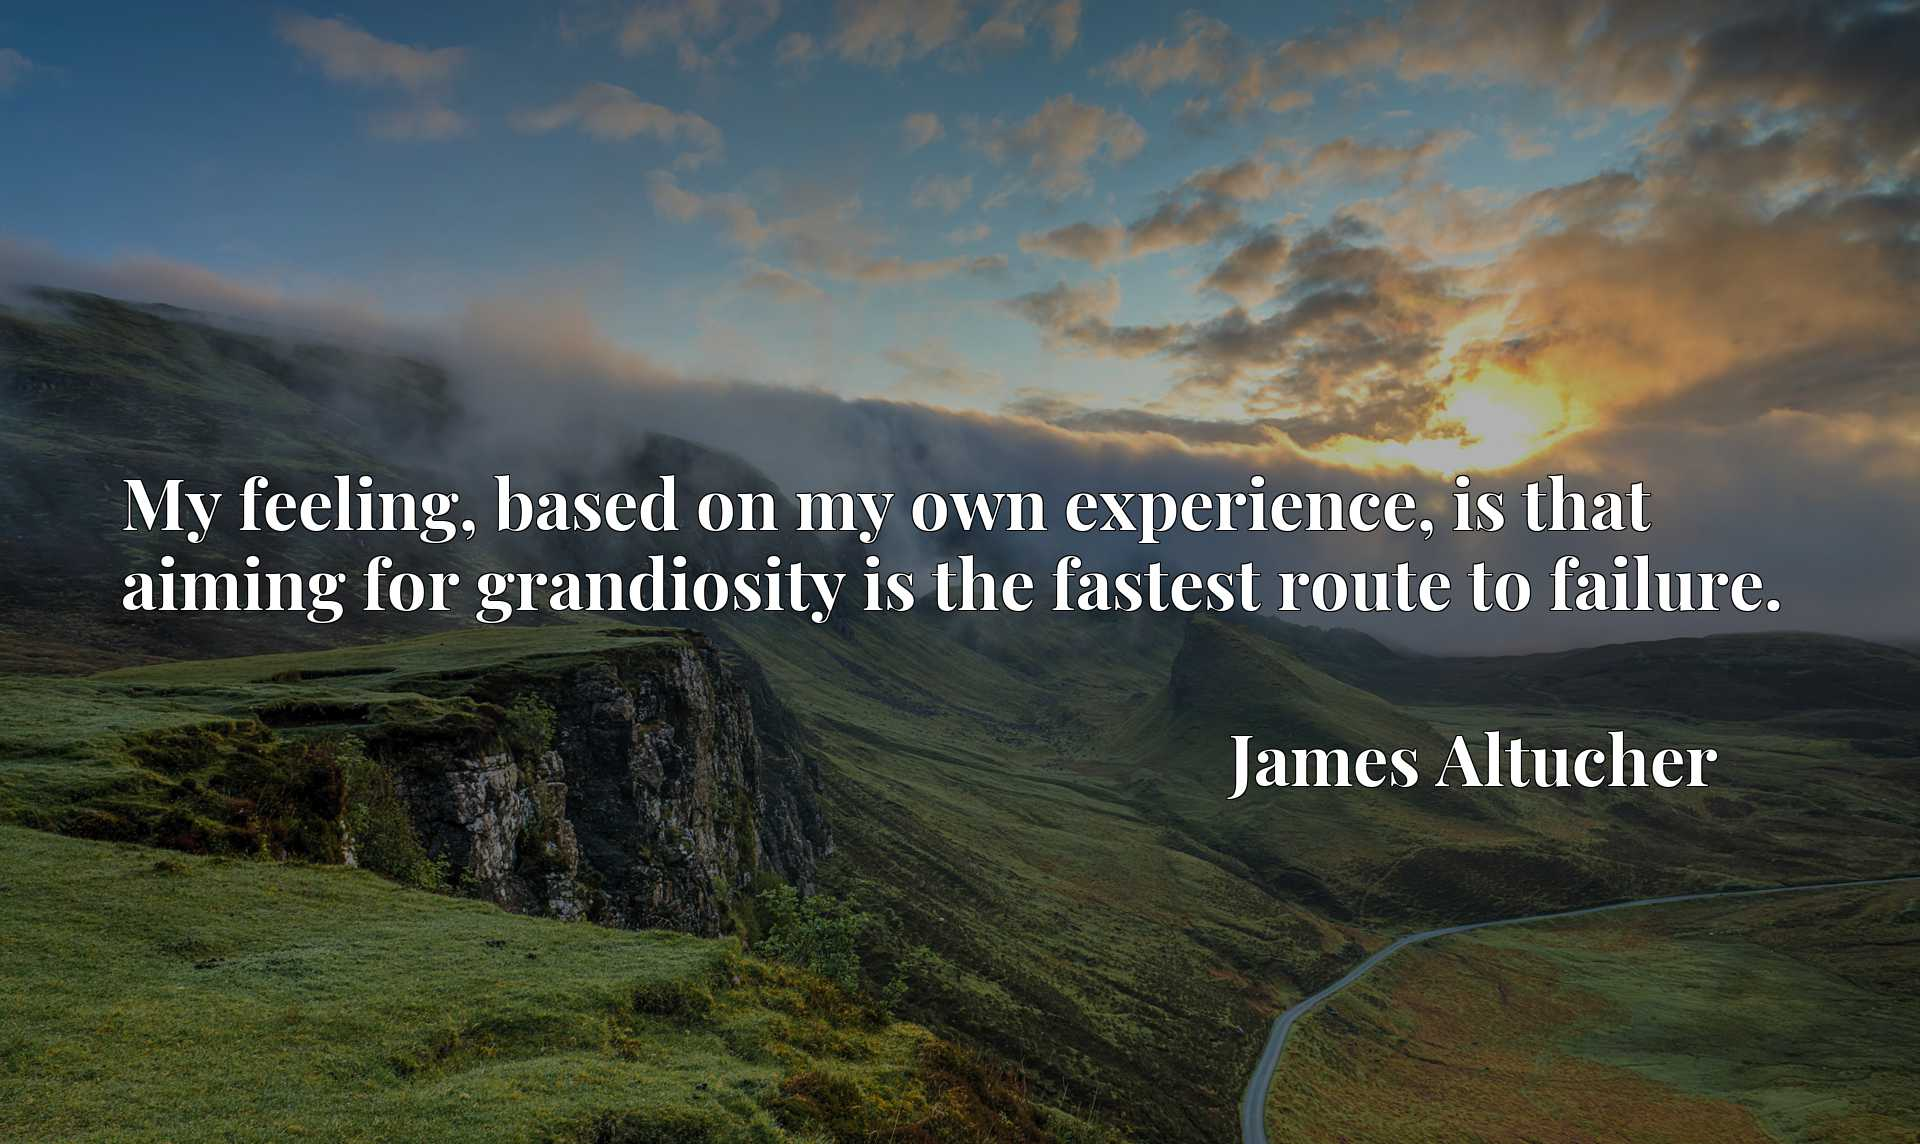 My feeling, based on my own experience, is that aiming for grandiosity is the fastest route to failure.